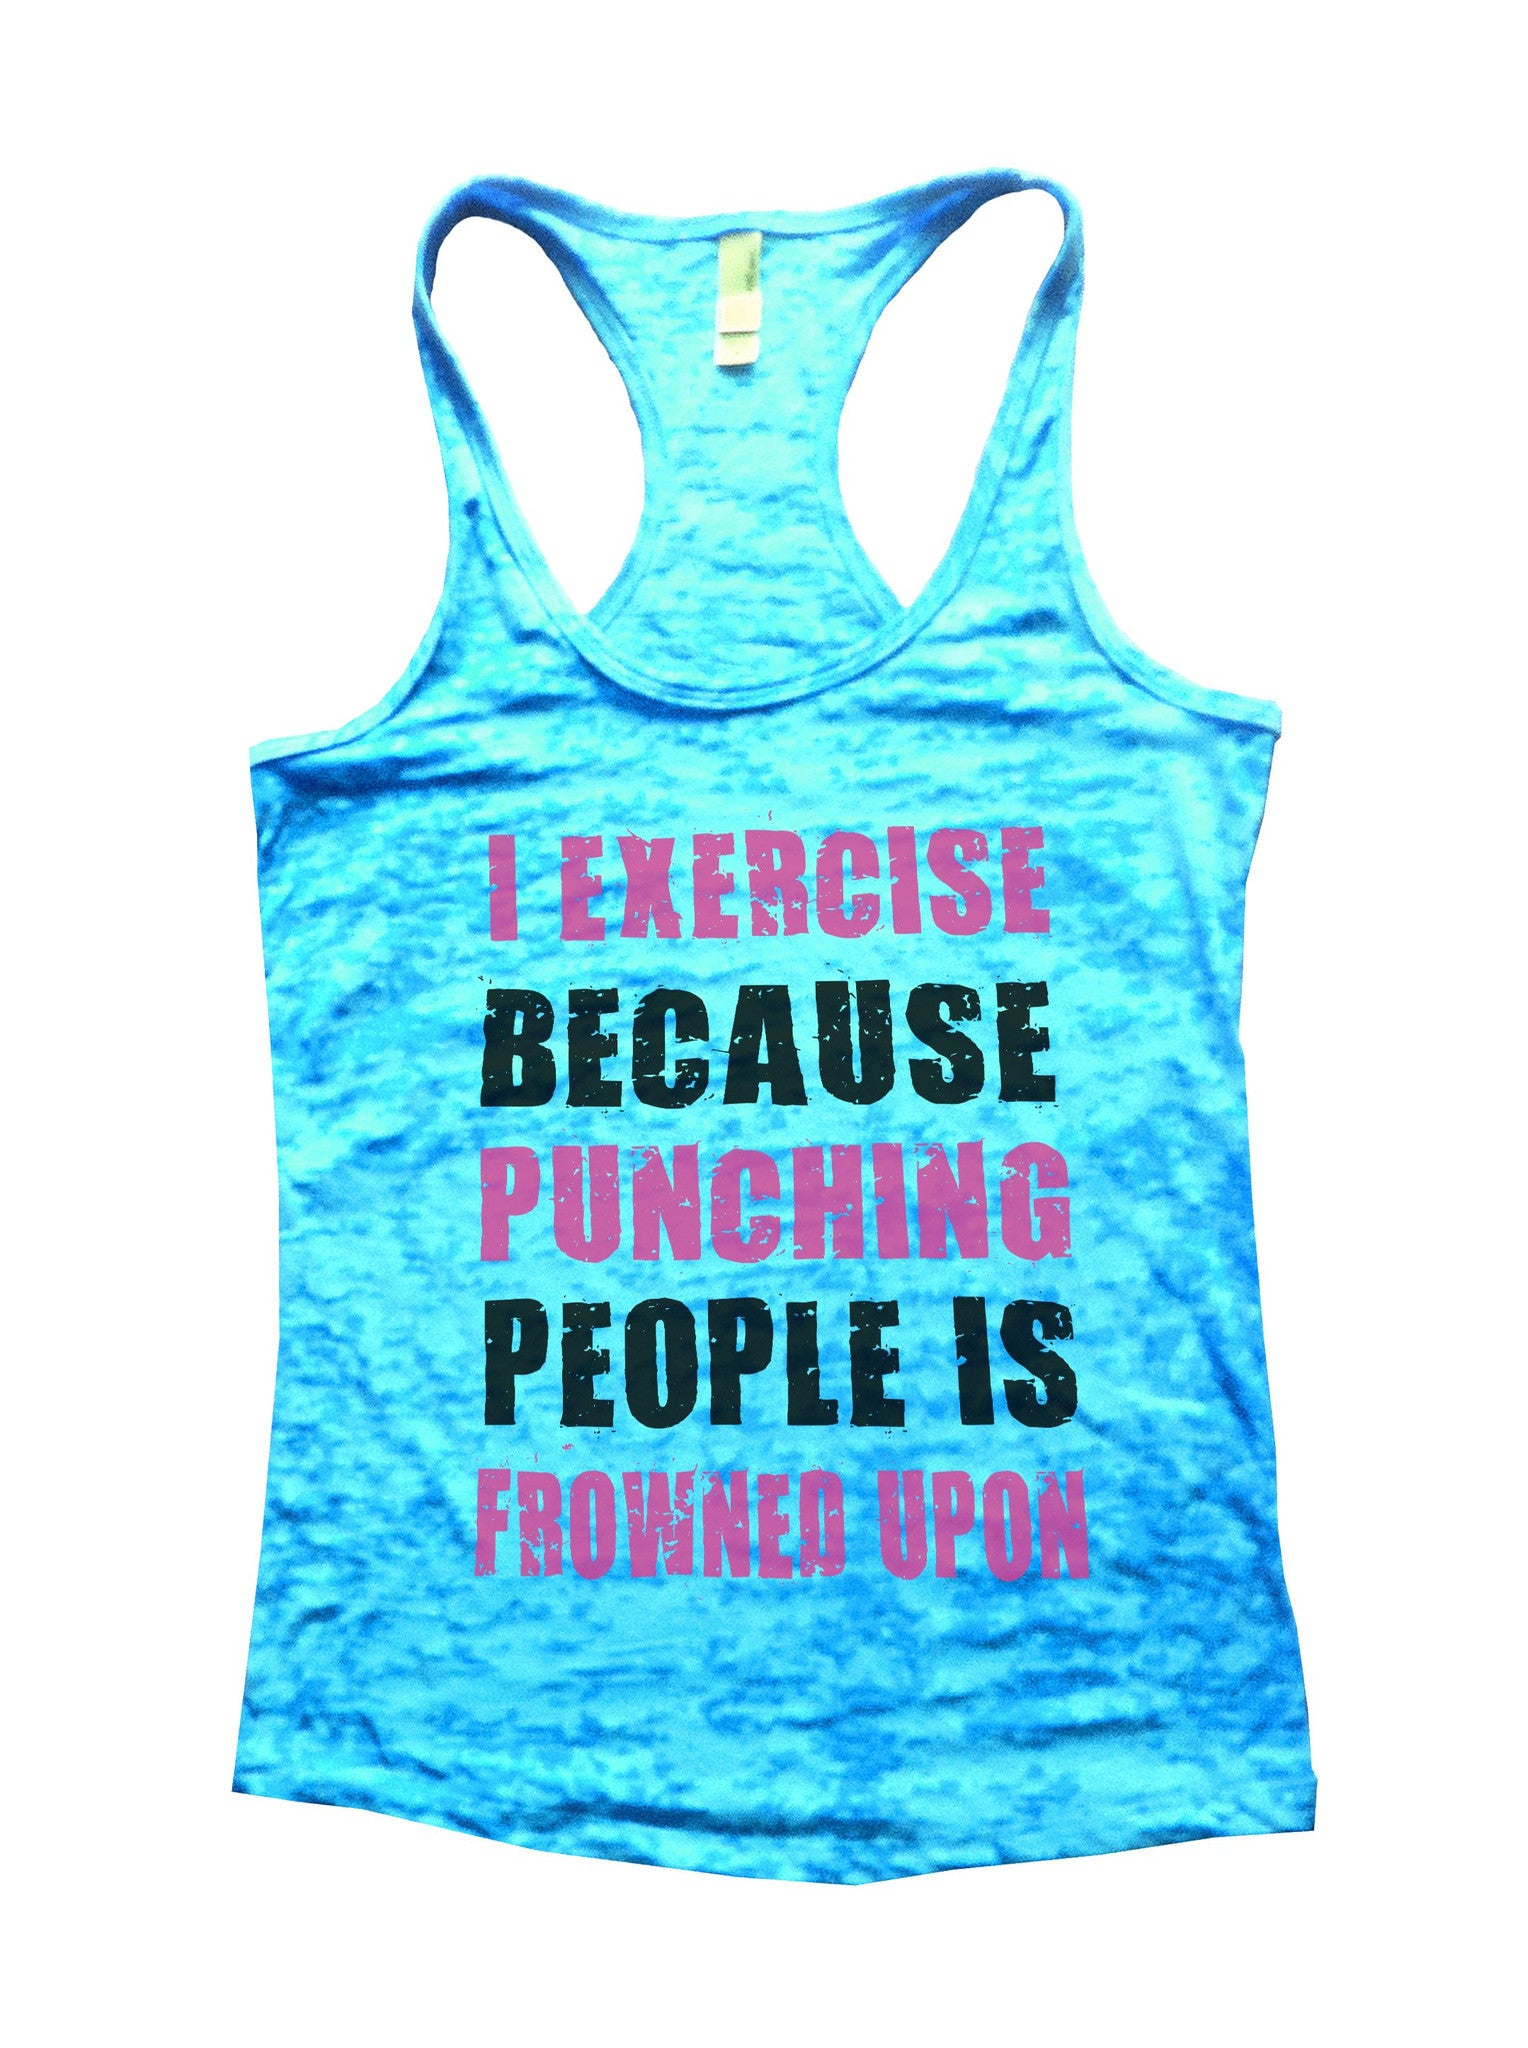 I Exercise Because Punching People Is Frowned Upon Burnout Tank Top By BurnoutTankTops.com - 718 - Funny Shirts Tank Tops Burnouts and Triblends  - 4